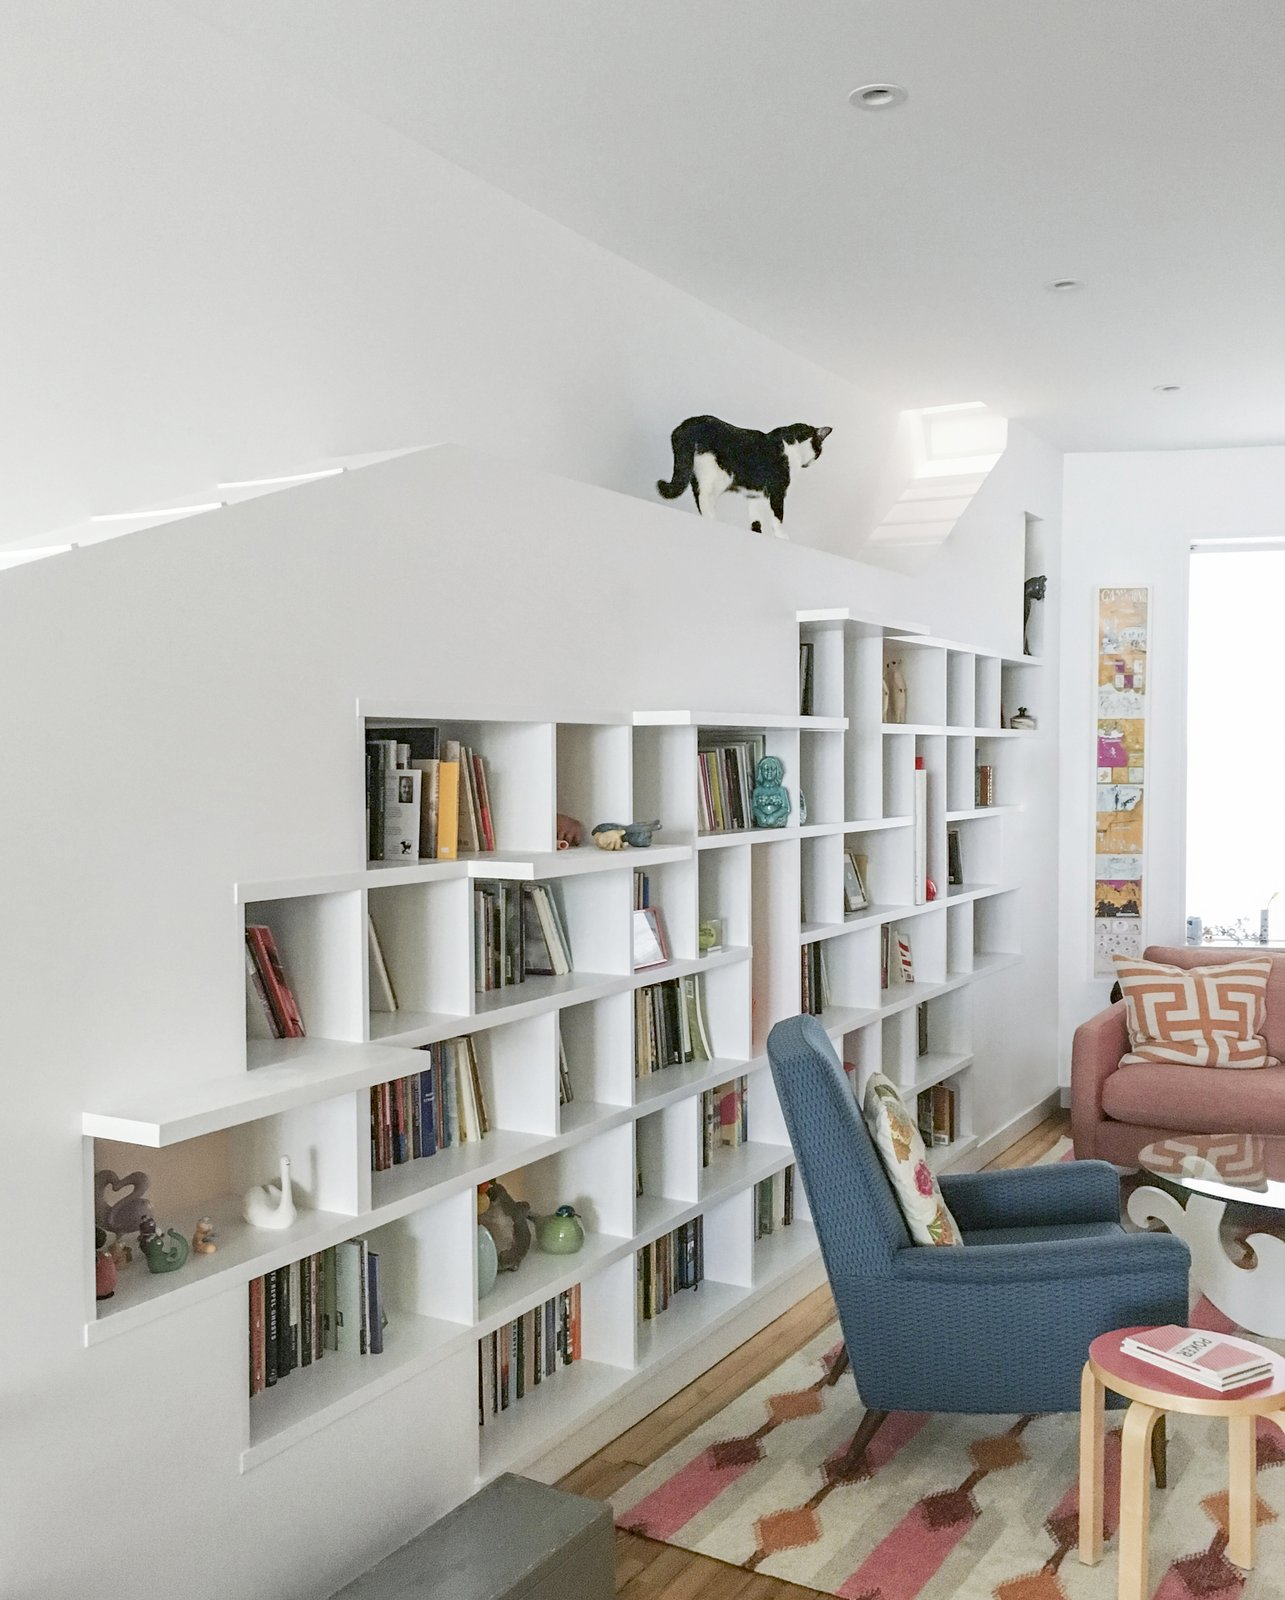 House for Booklovers and Cats bookshelf with kitty pathway